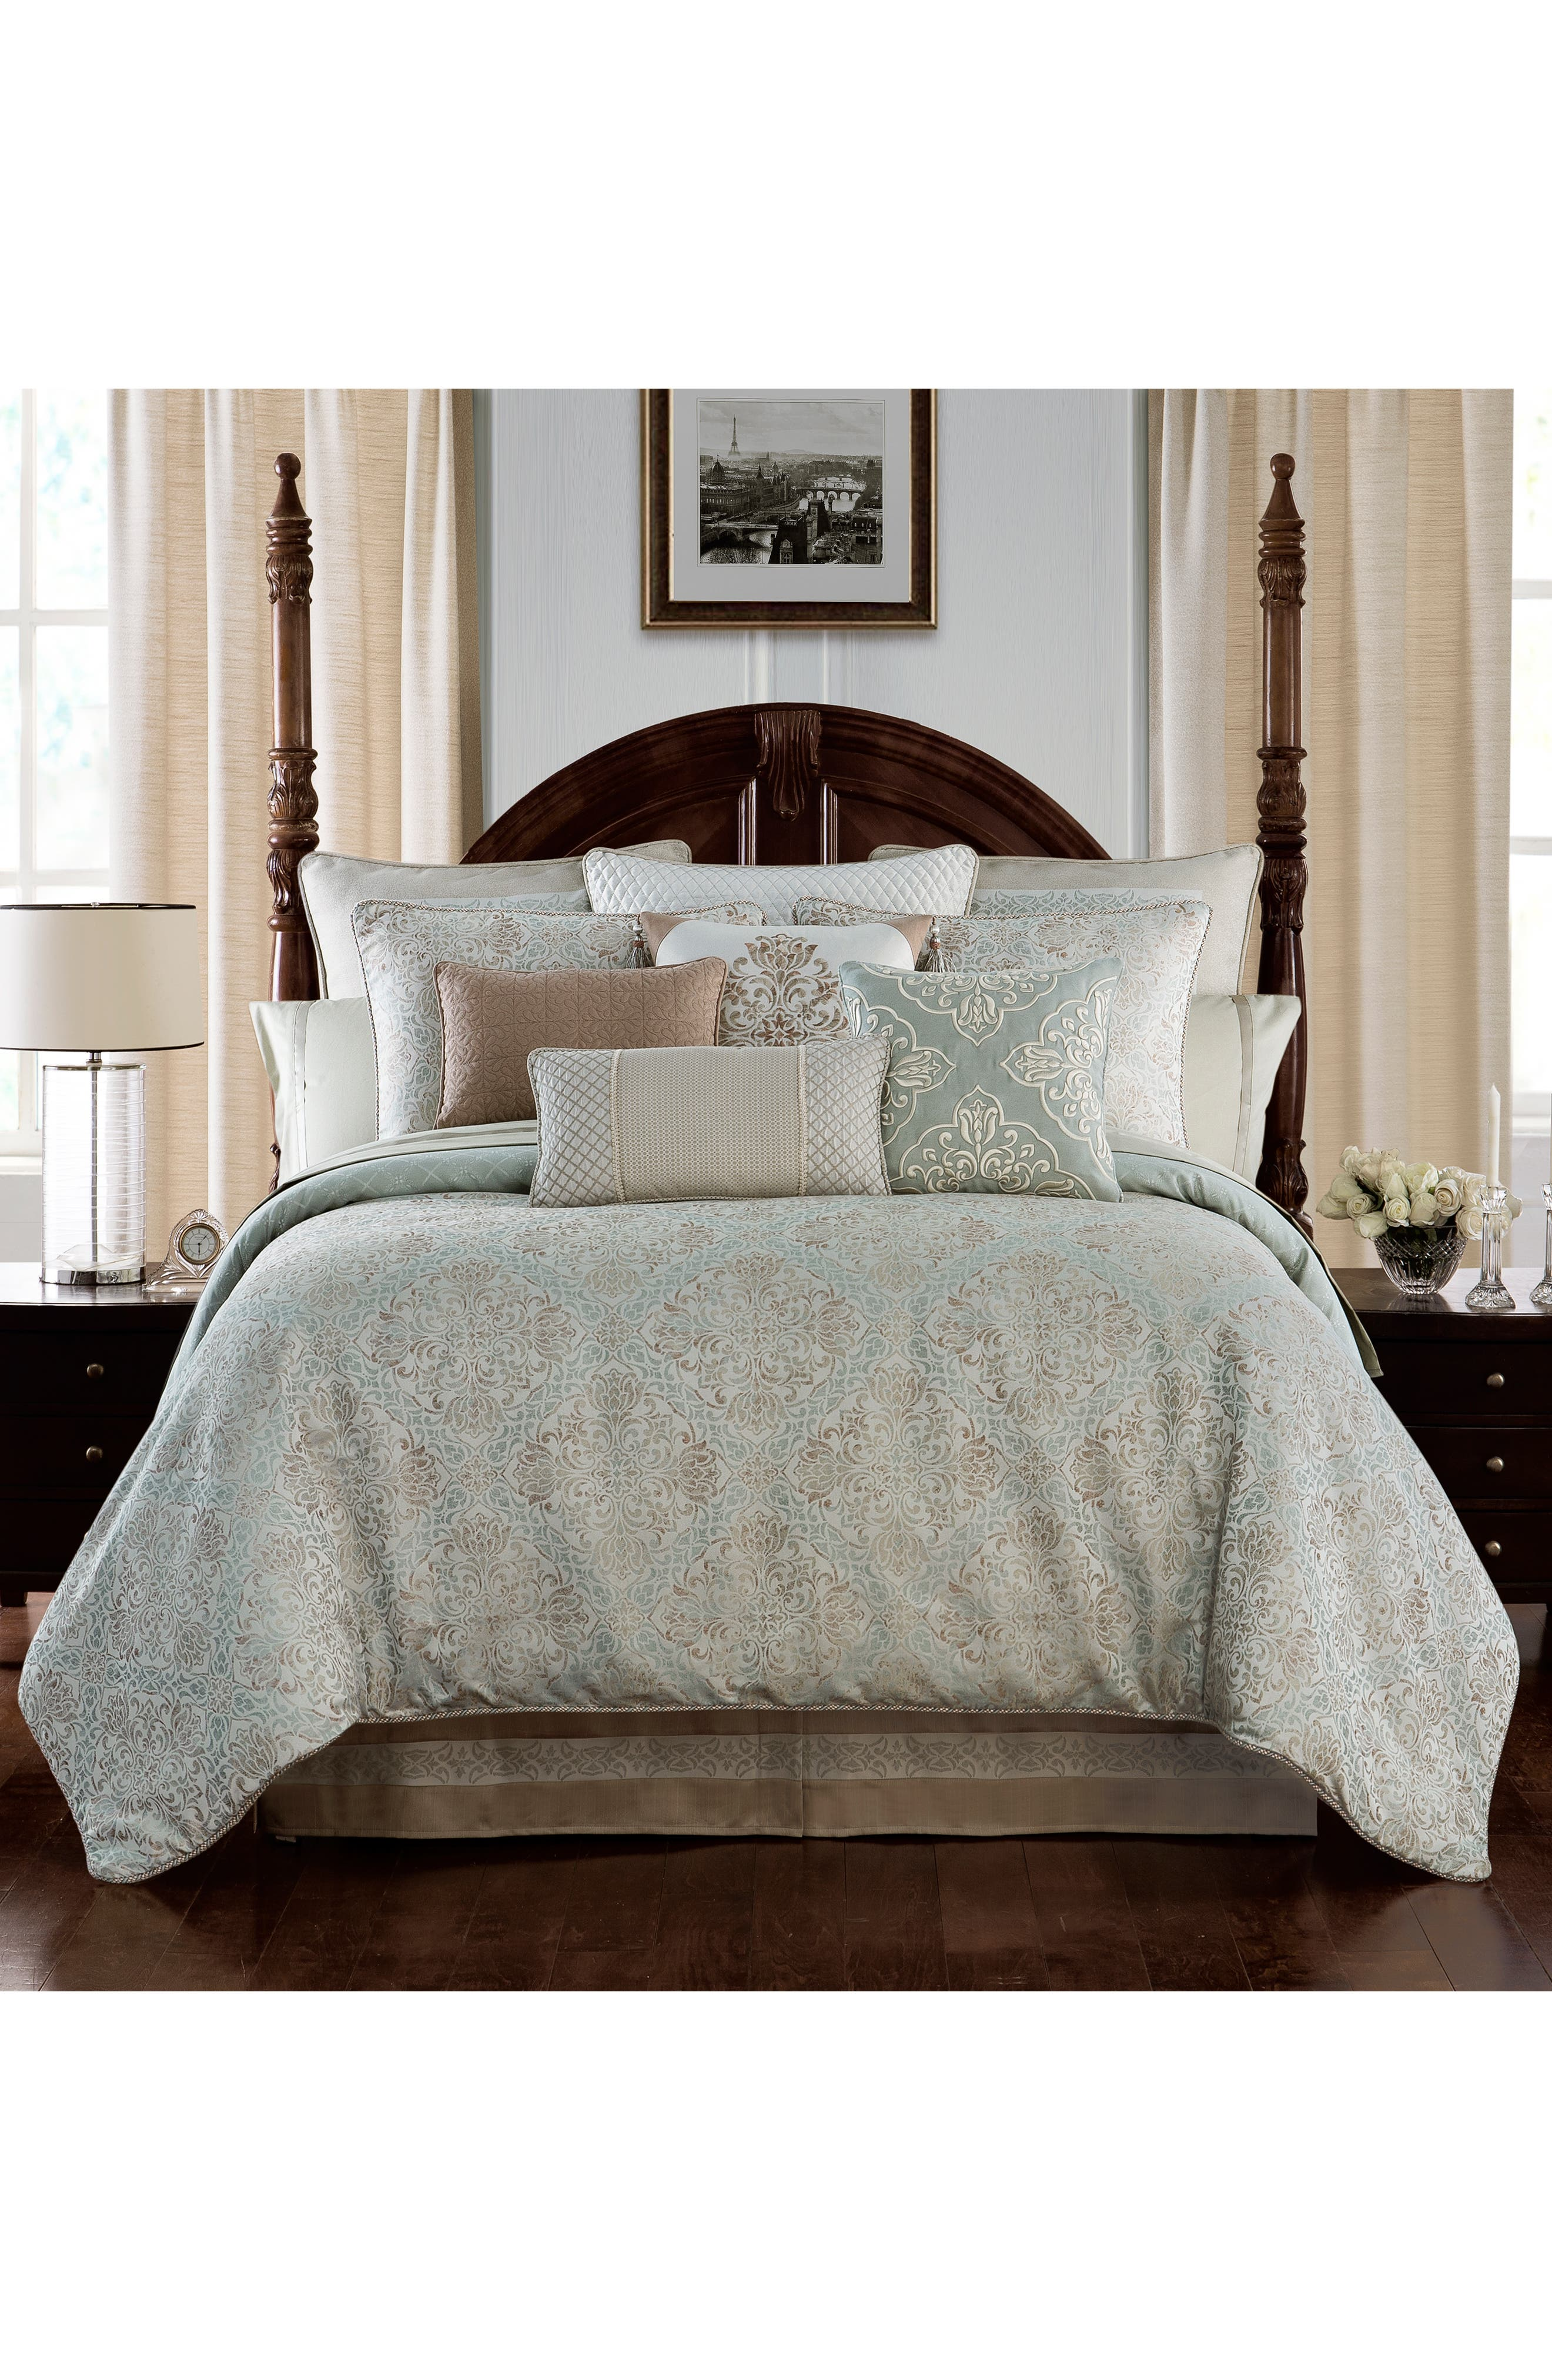 Waterford Gwyneth Reversible Comforter, Sham U0026 Bedskirt Set